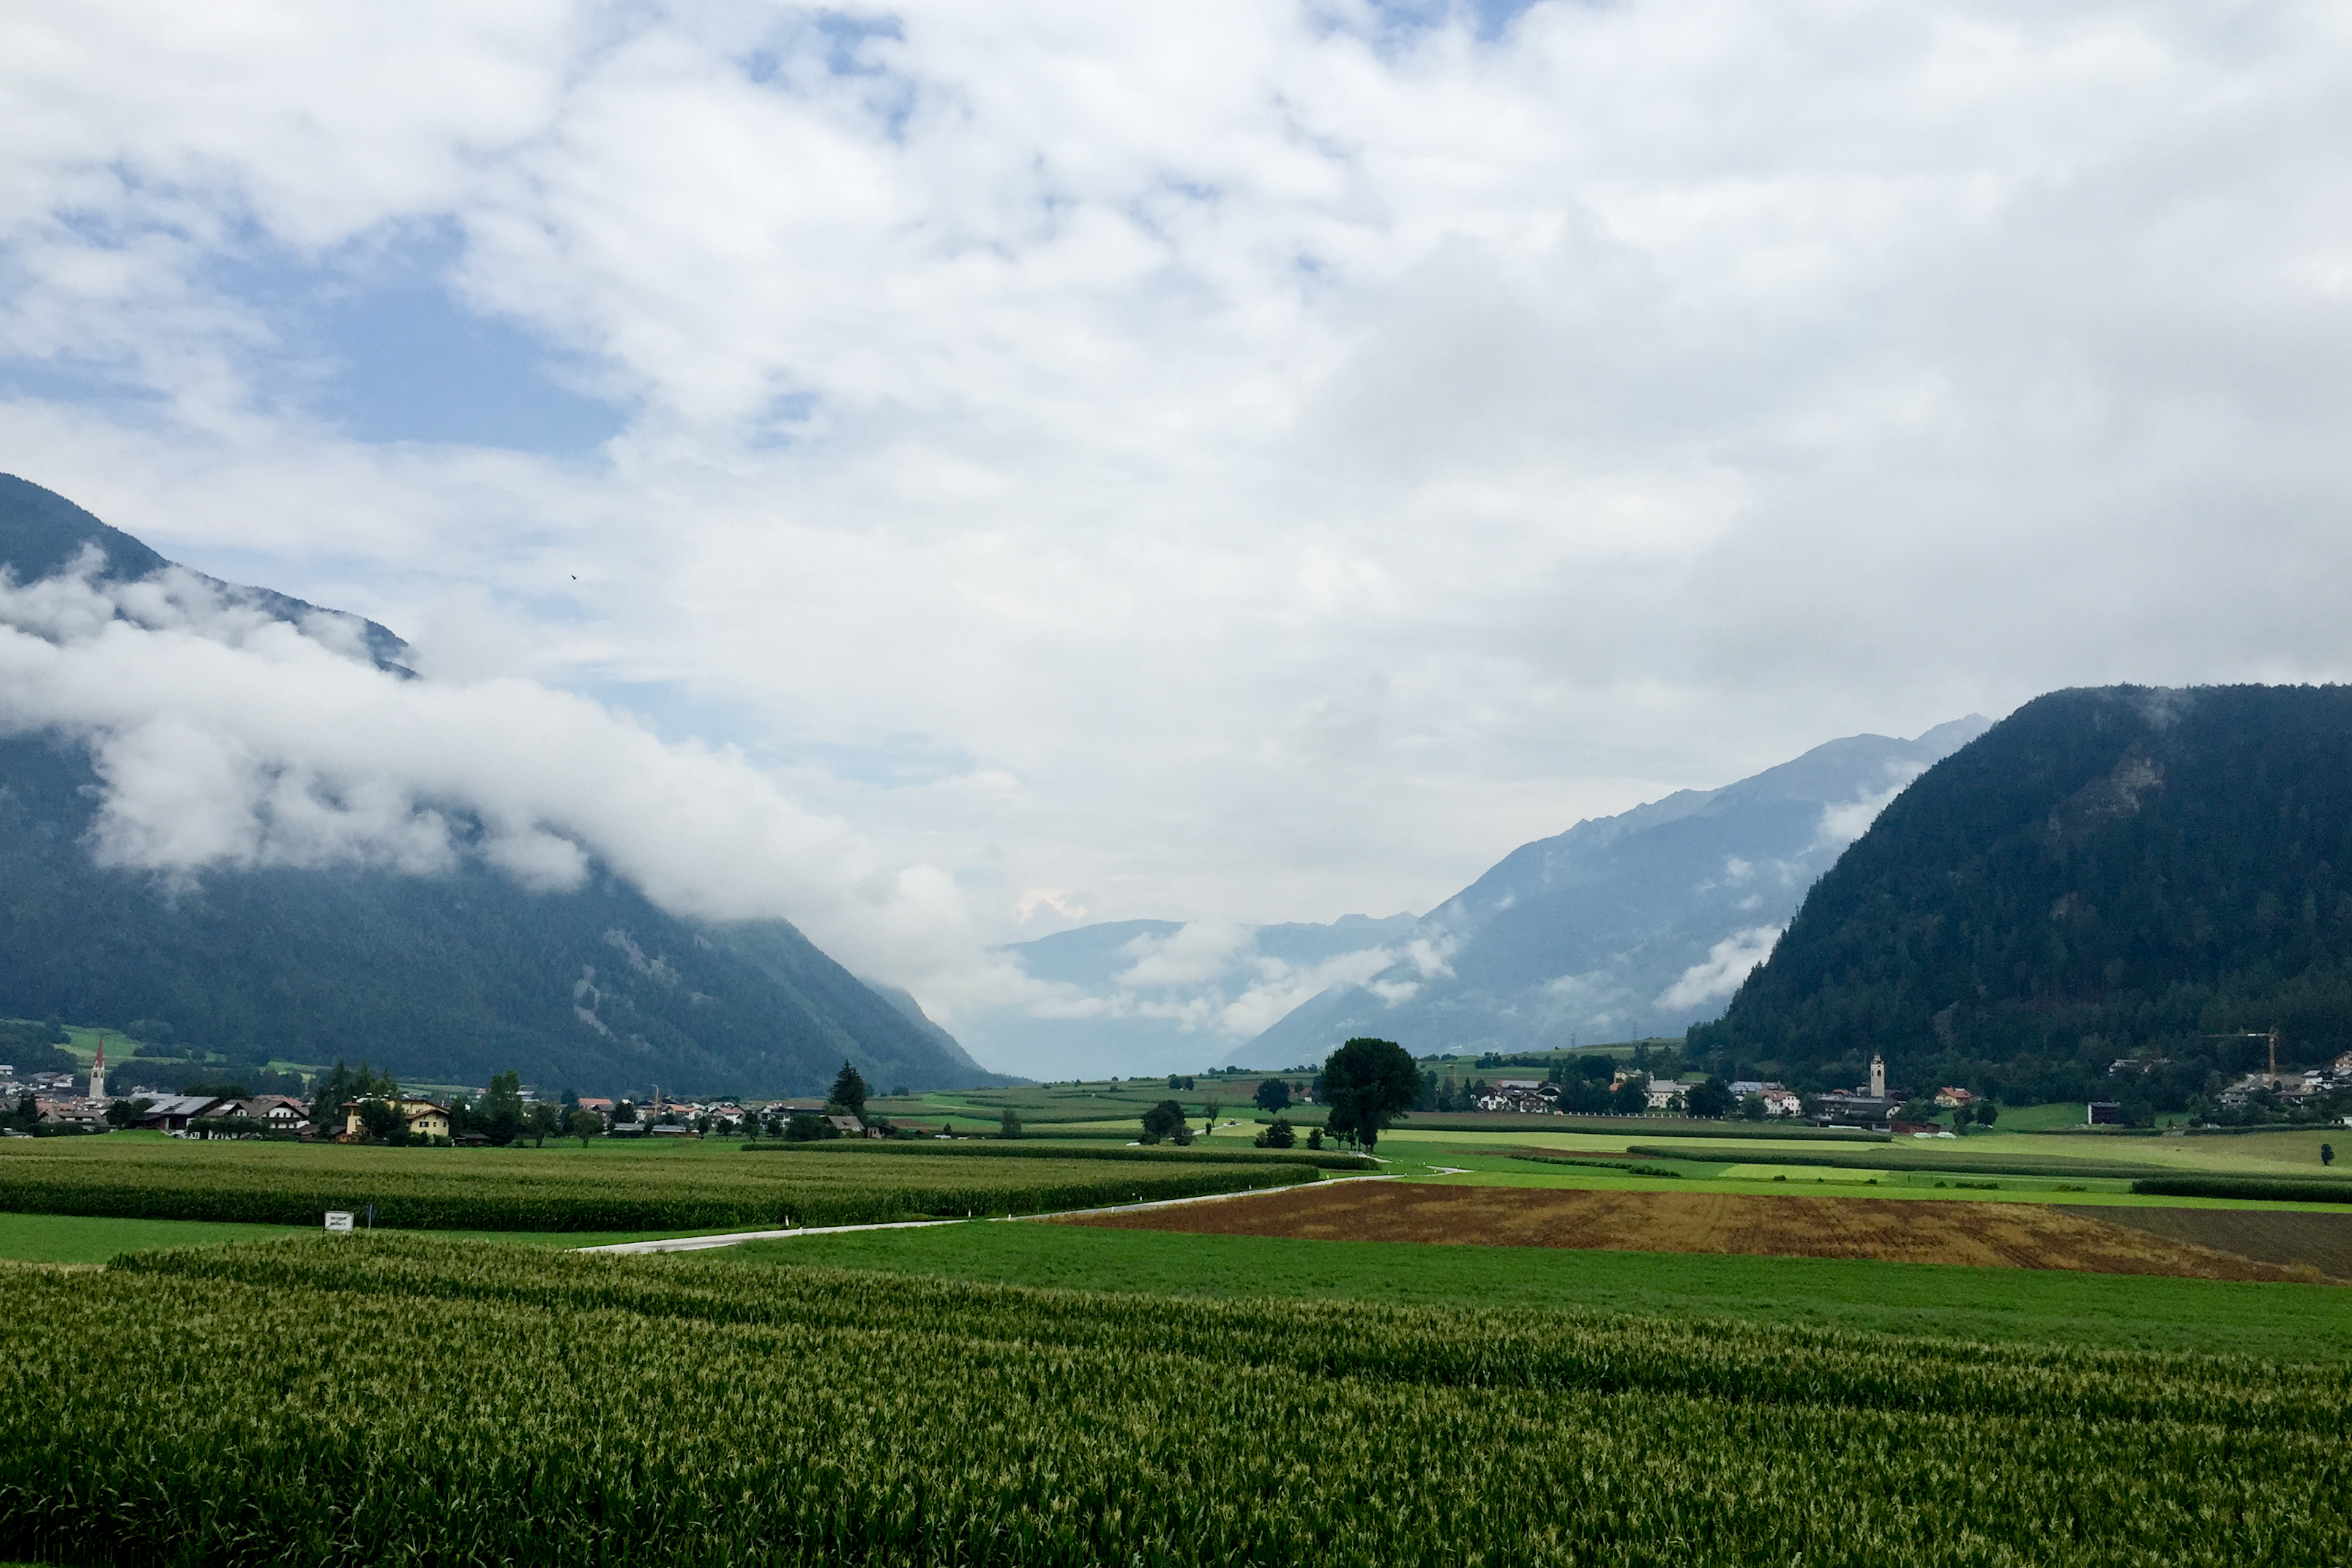 EJC 2015 Bruneck - Saturday August 8th: Another view from our bedroom window, this time with dramatic clouds.